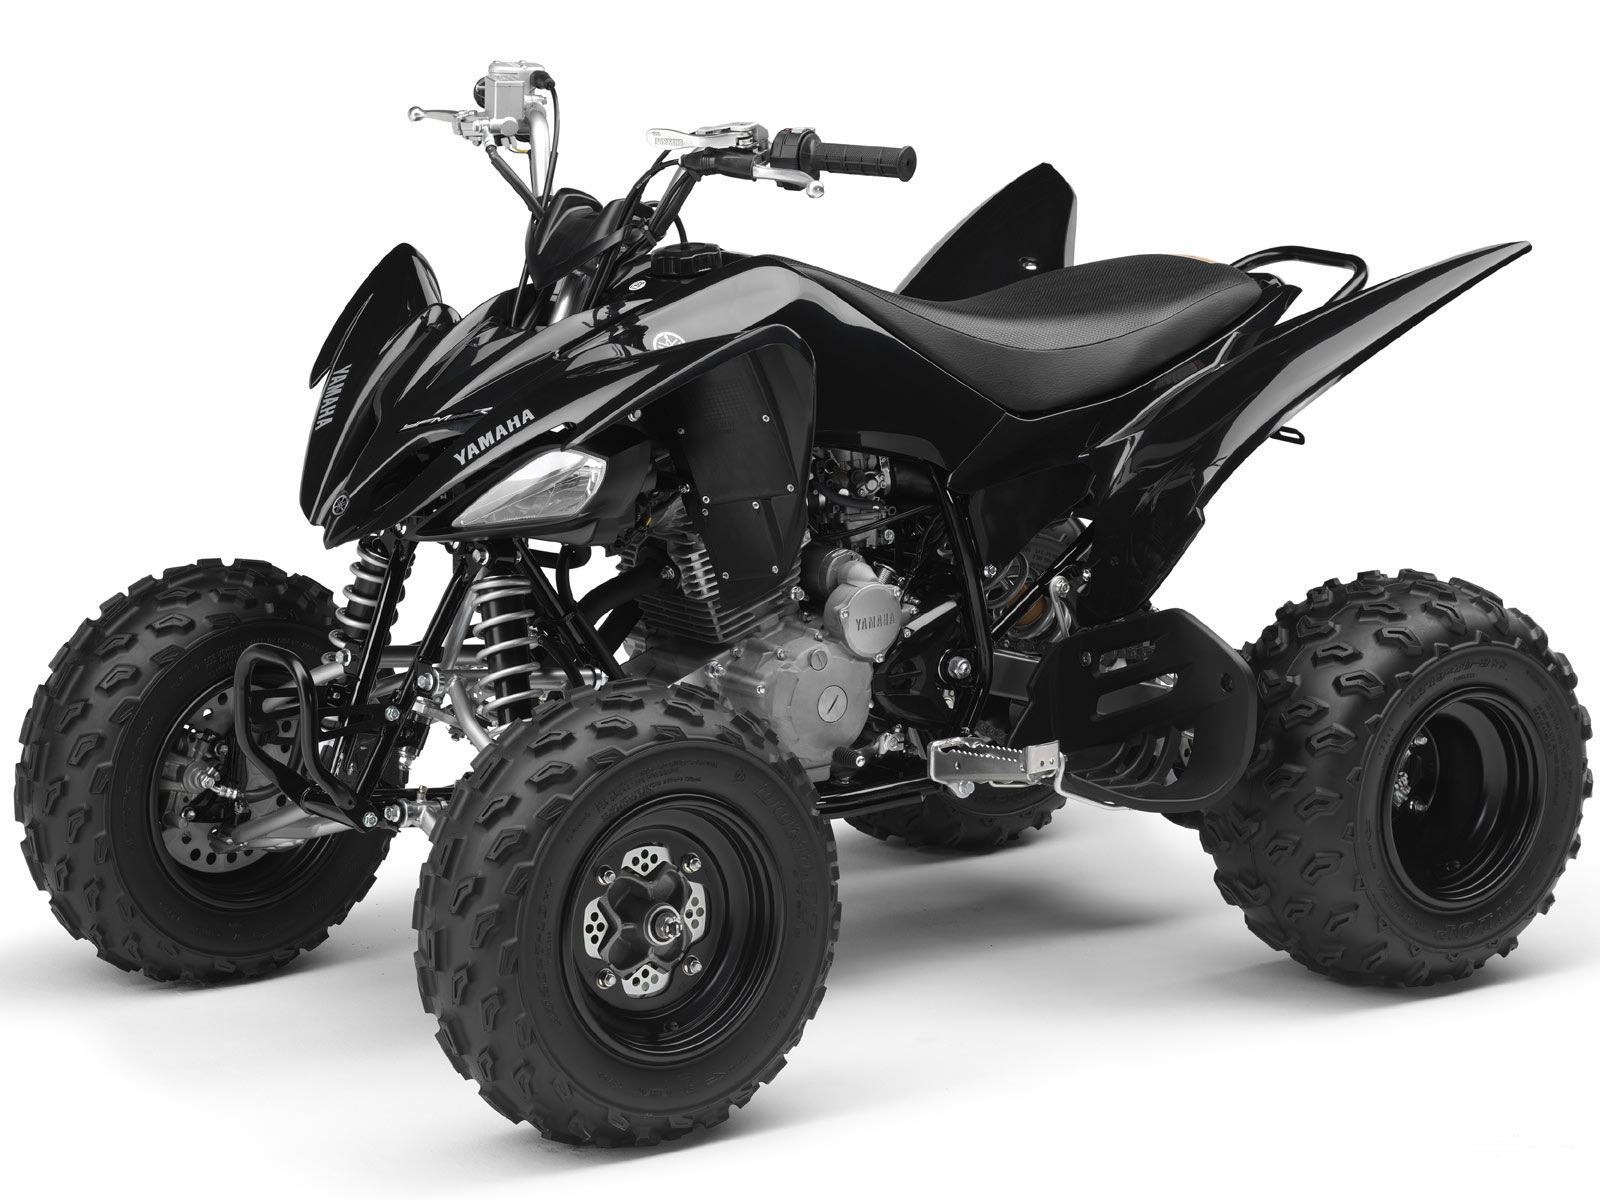 2008 yamaha yfm 250 raptor atv pictures specifications super moto and sexy girls. Black Bedroom Furniture Sets. Home Design Ideas